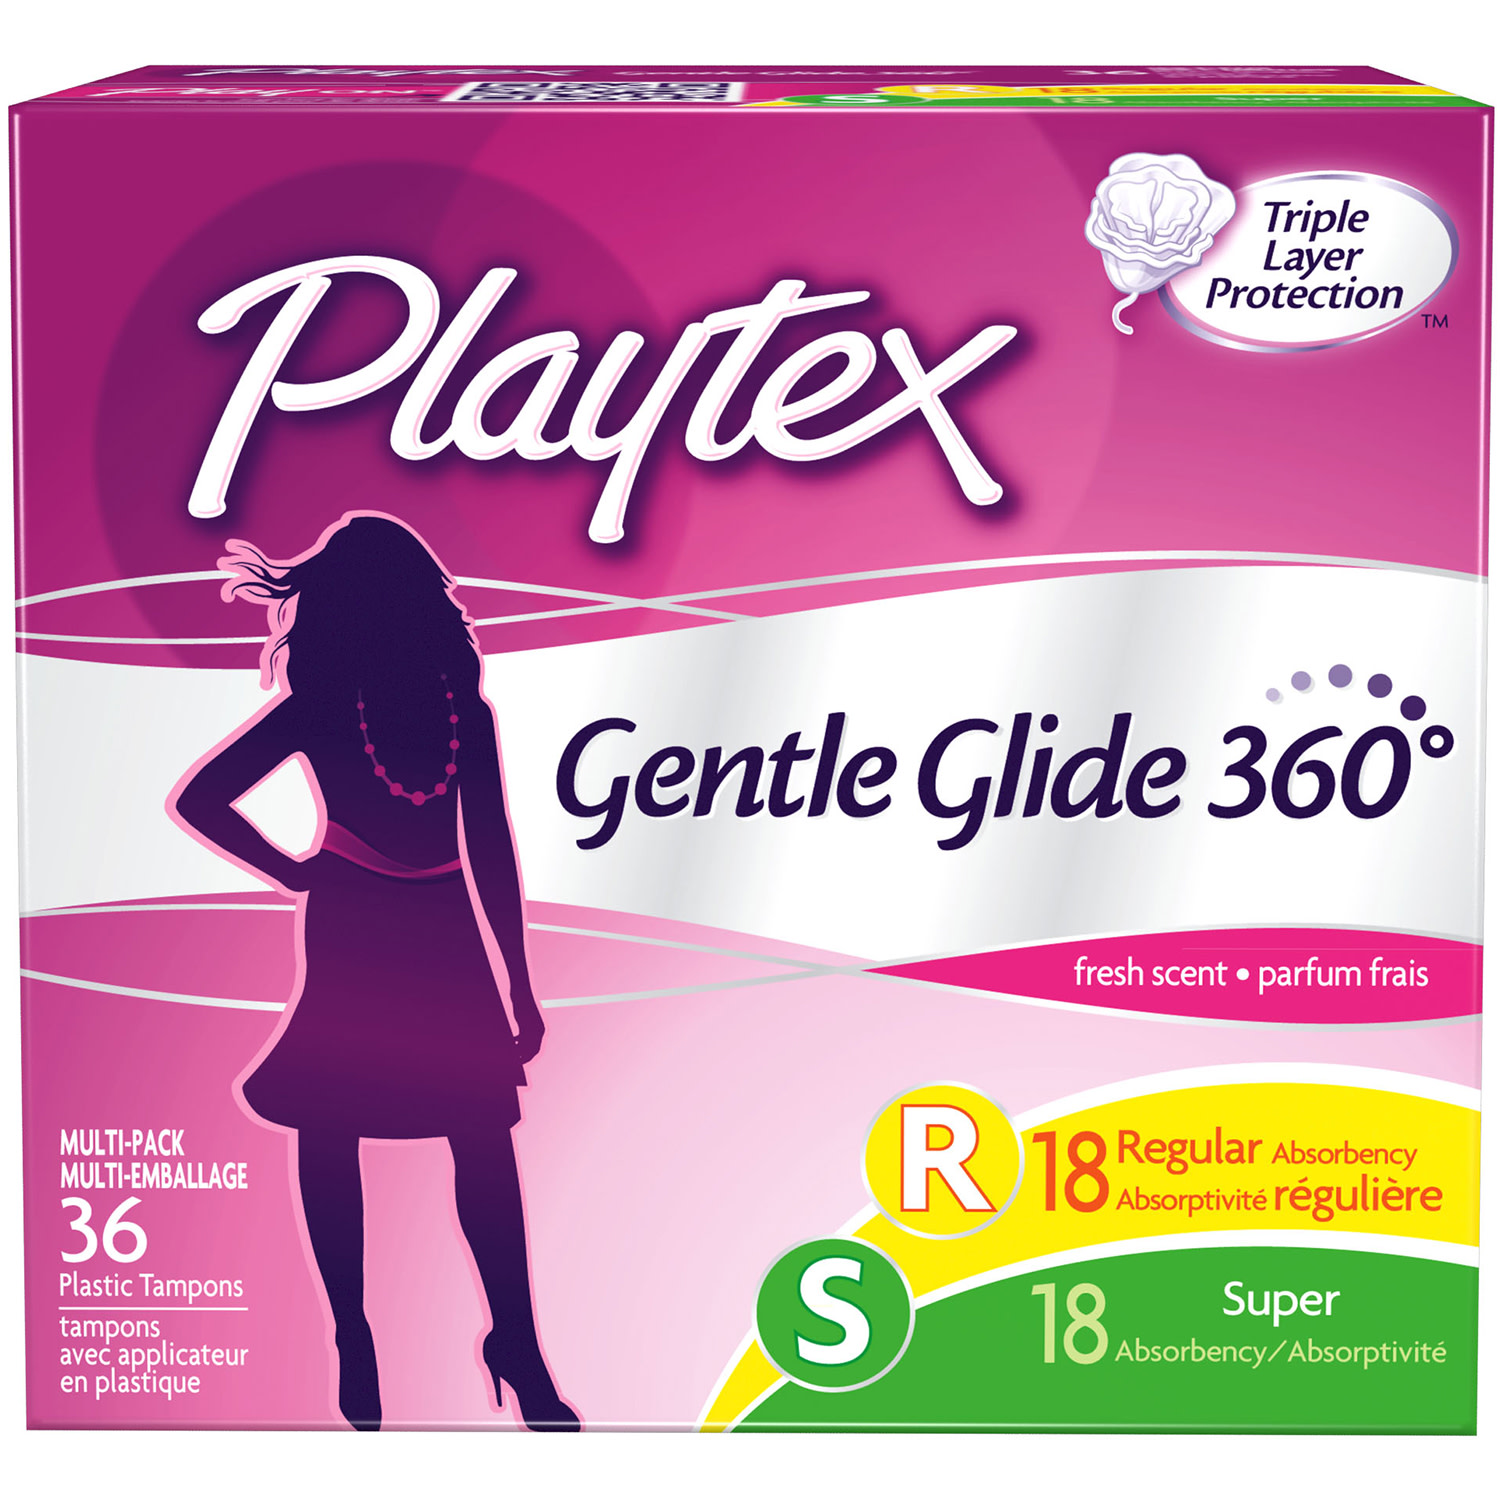 Playtex Gentle Glide Tampons Scented Multi-Pack 18 Regular Absorbency And 18 Super Absorbency - 36 Count